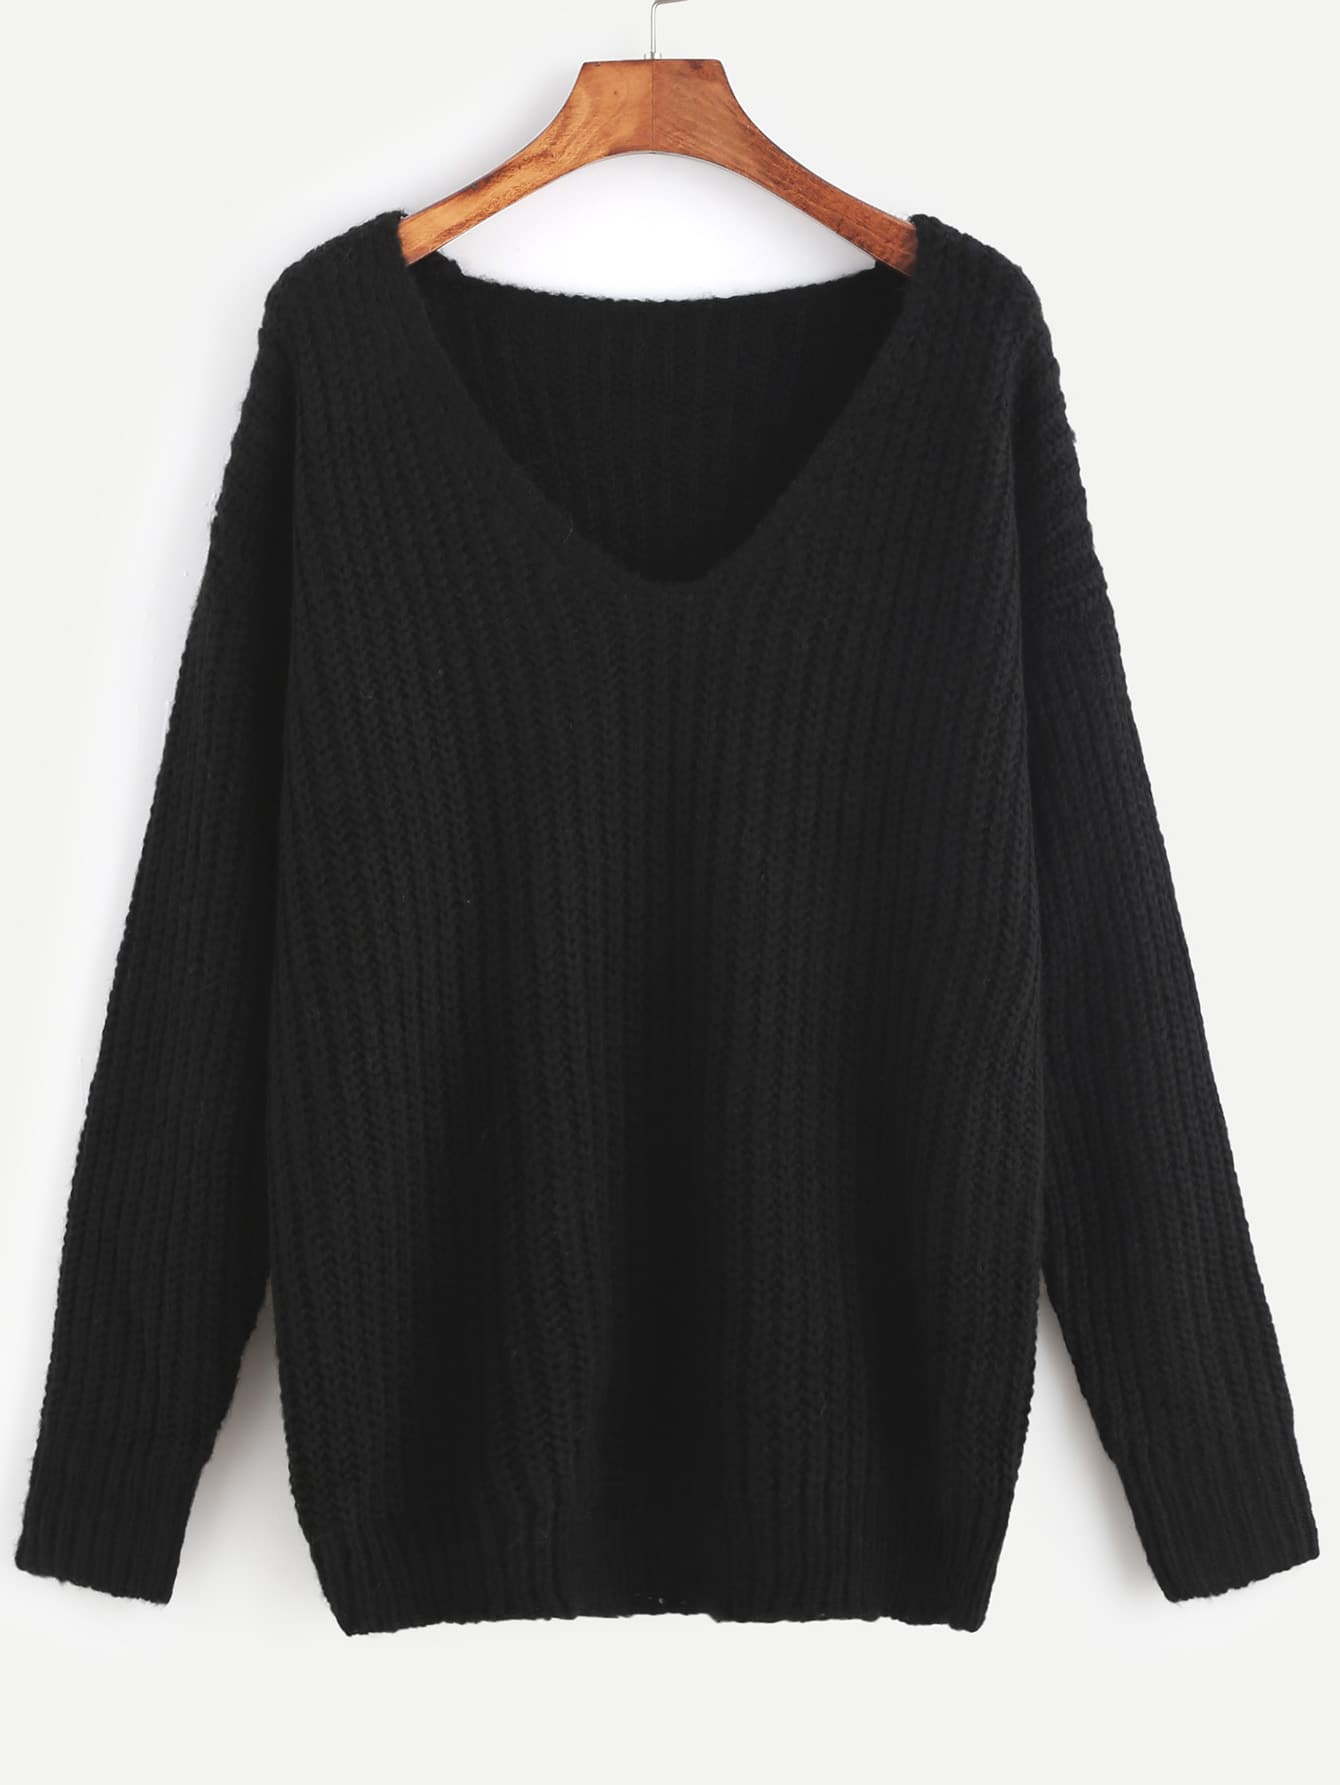 V Neckline Drop Shoulder Ribbed Knit Sweater sweater161104401